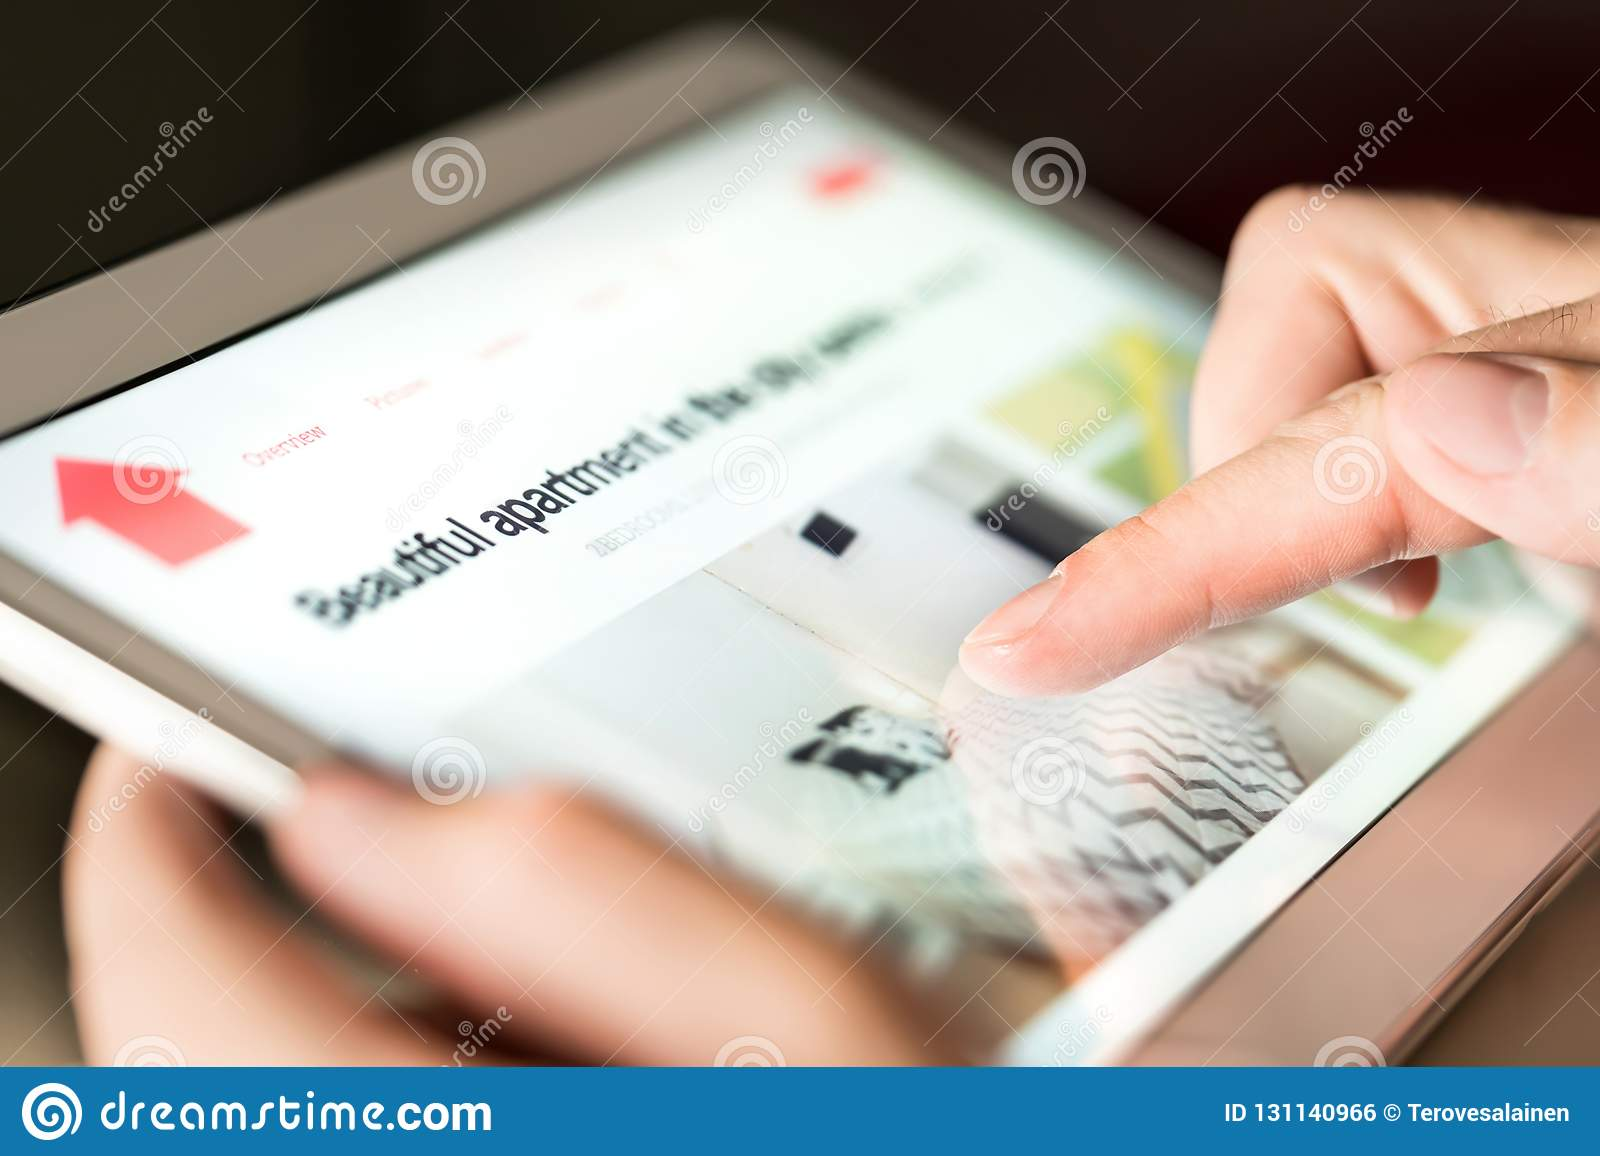 Man searching holiday home, vacation apartment or property for rent online with tablet.